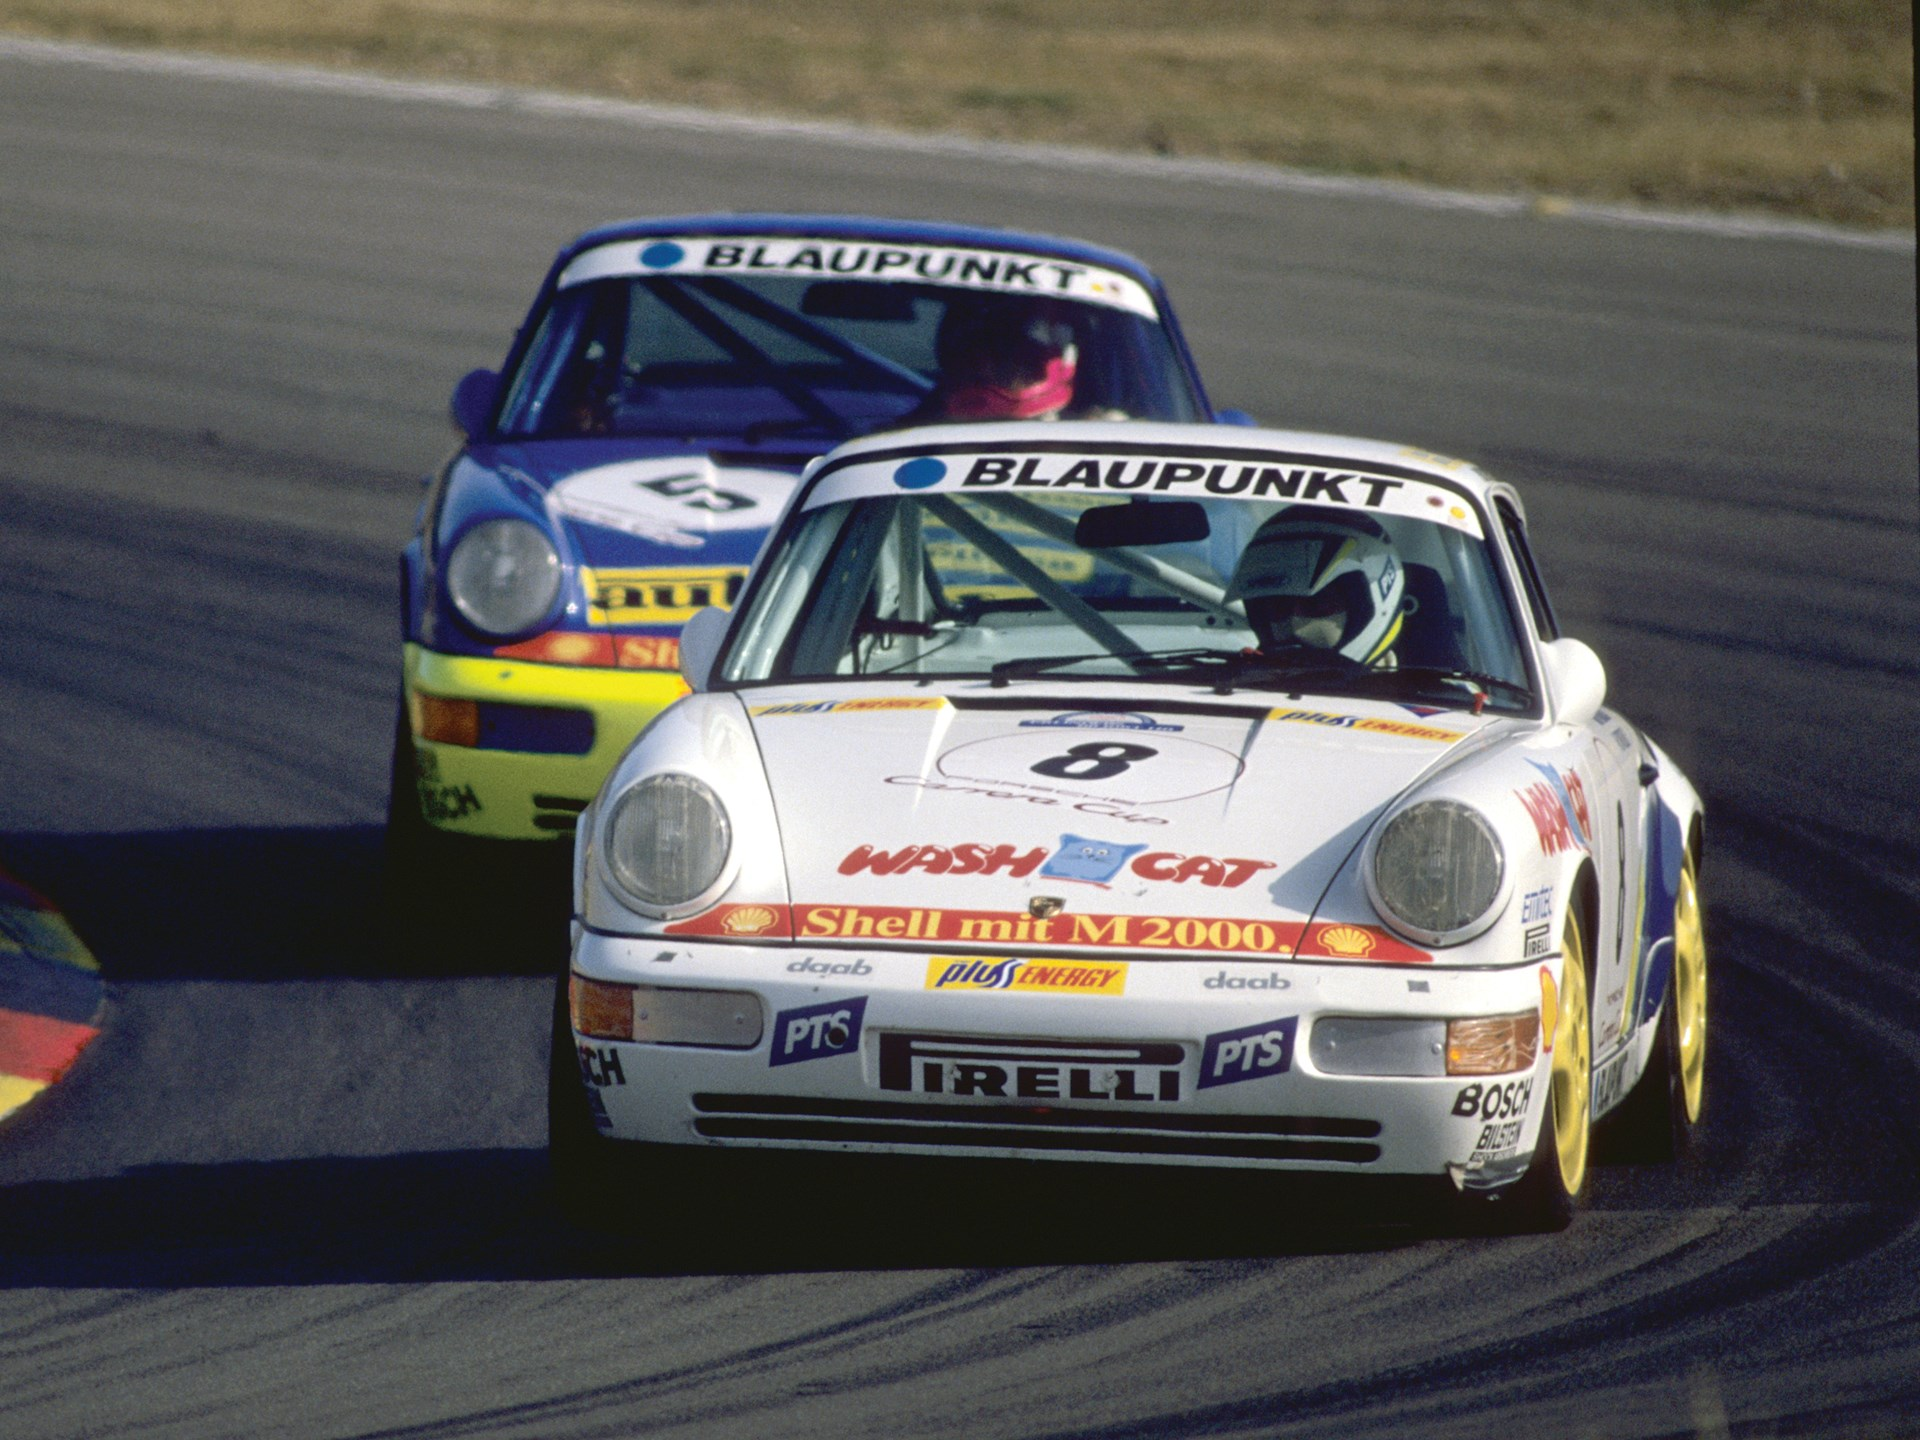 On track at the 24 Hours of the Nürburgring in 1990.